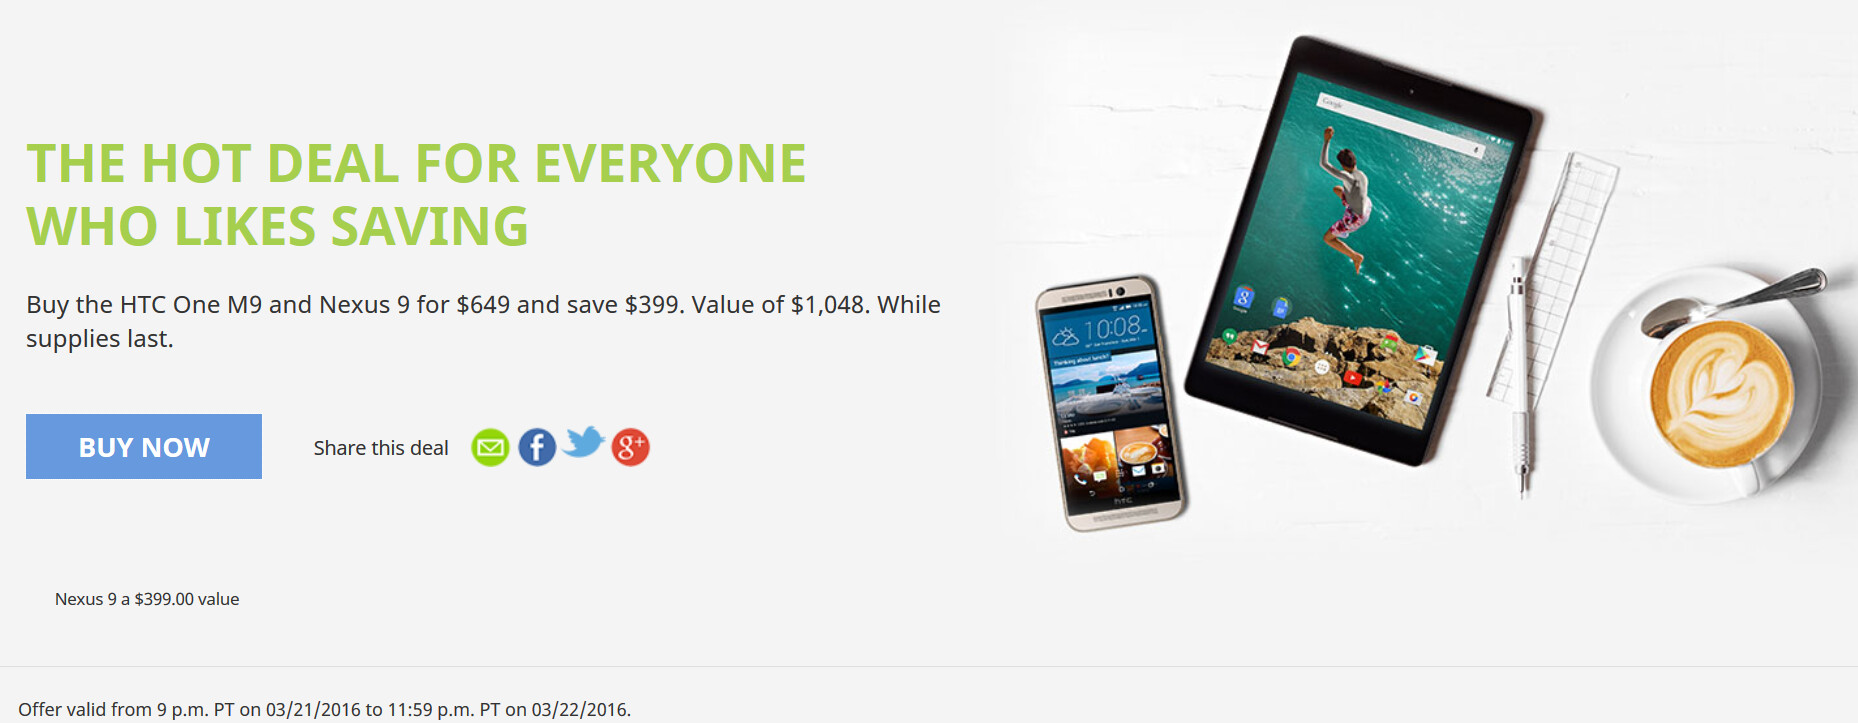 Save 38% when you buy the HTC One M9 and the Nexus 9 ...